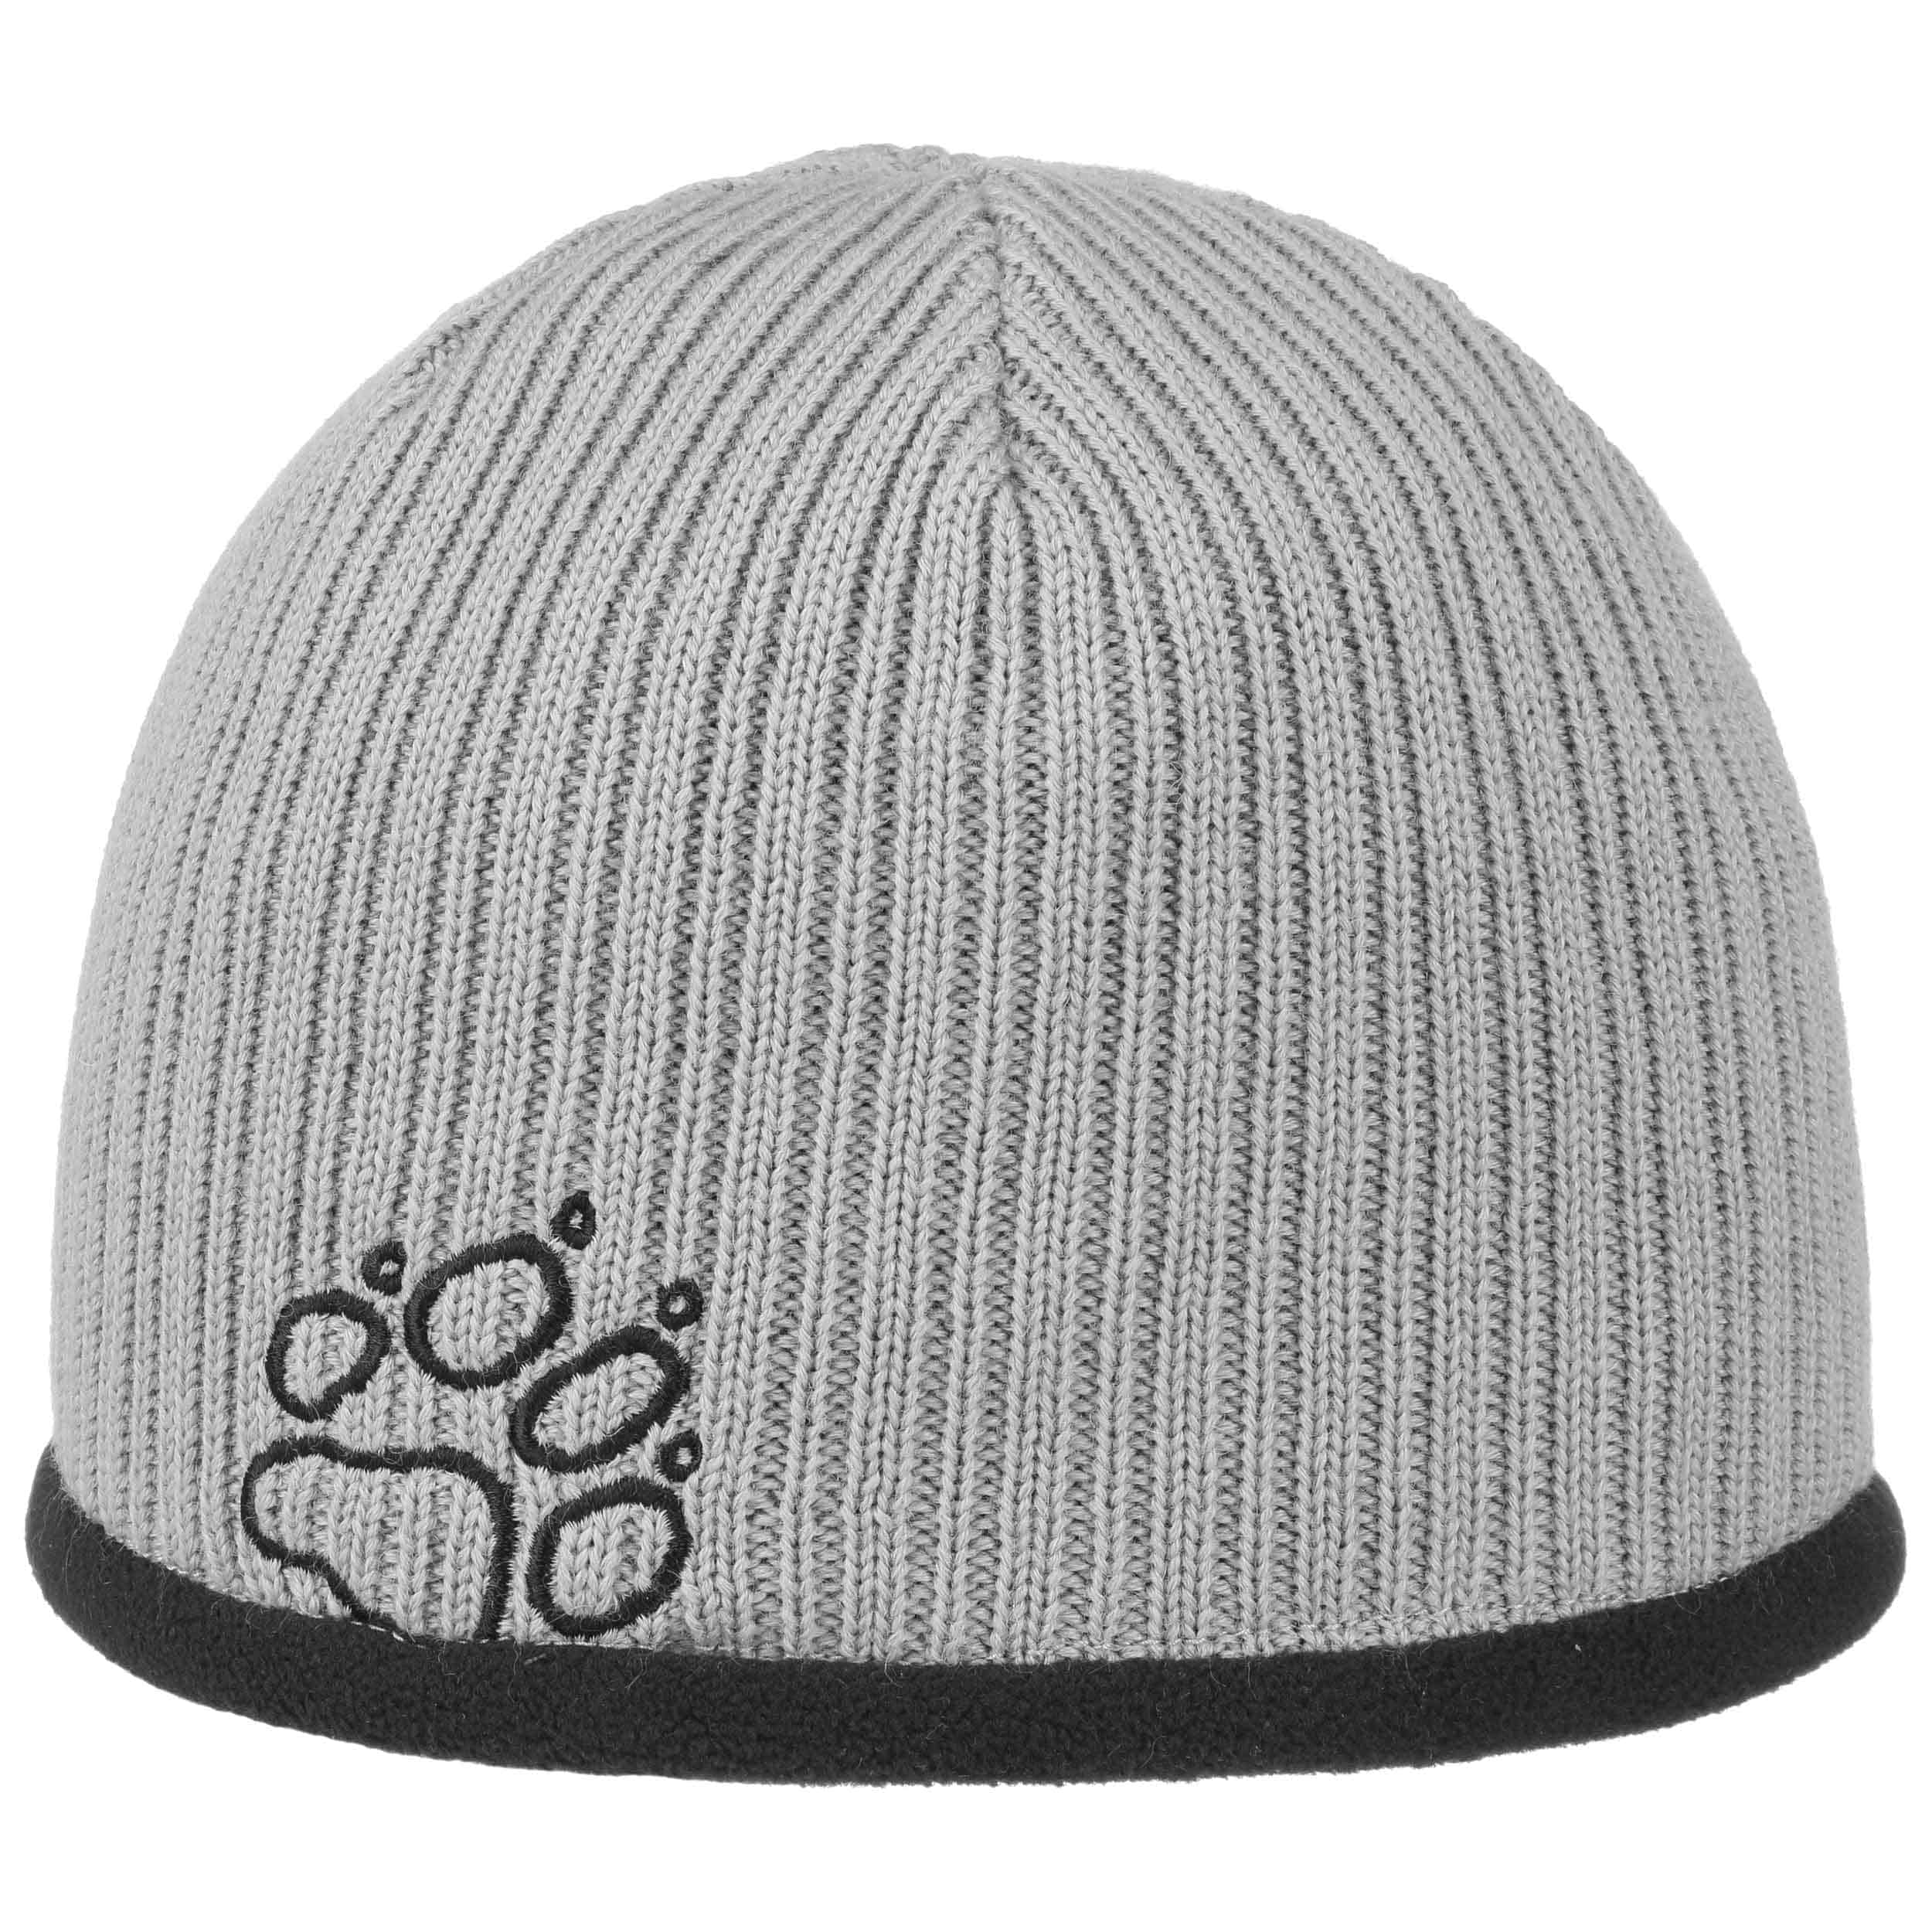 86741353d81 ... Stormlock Ribbed Beanie by Jack Wolfskin - grey 1 ...